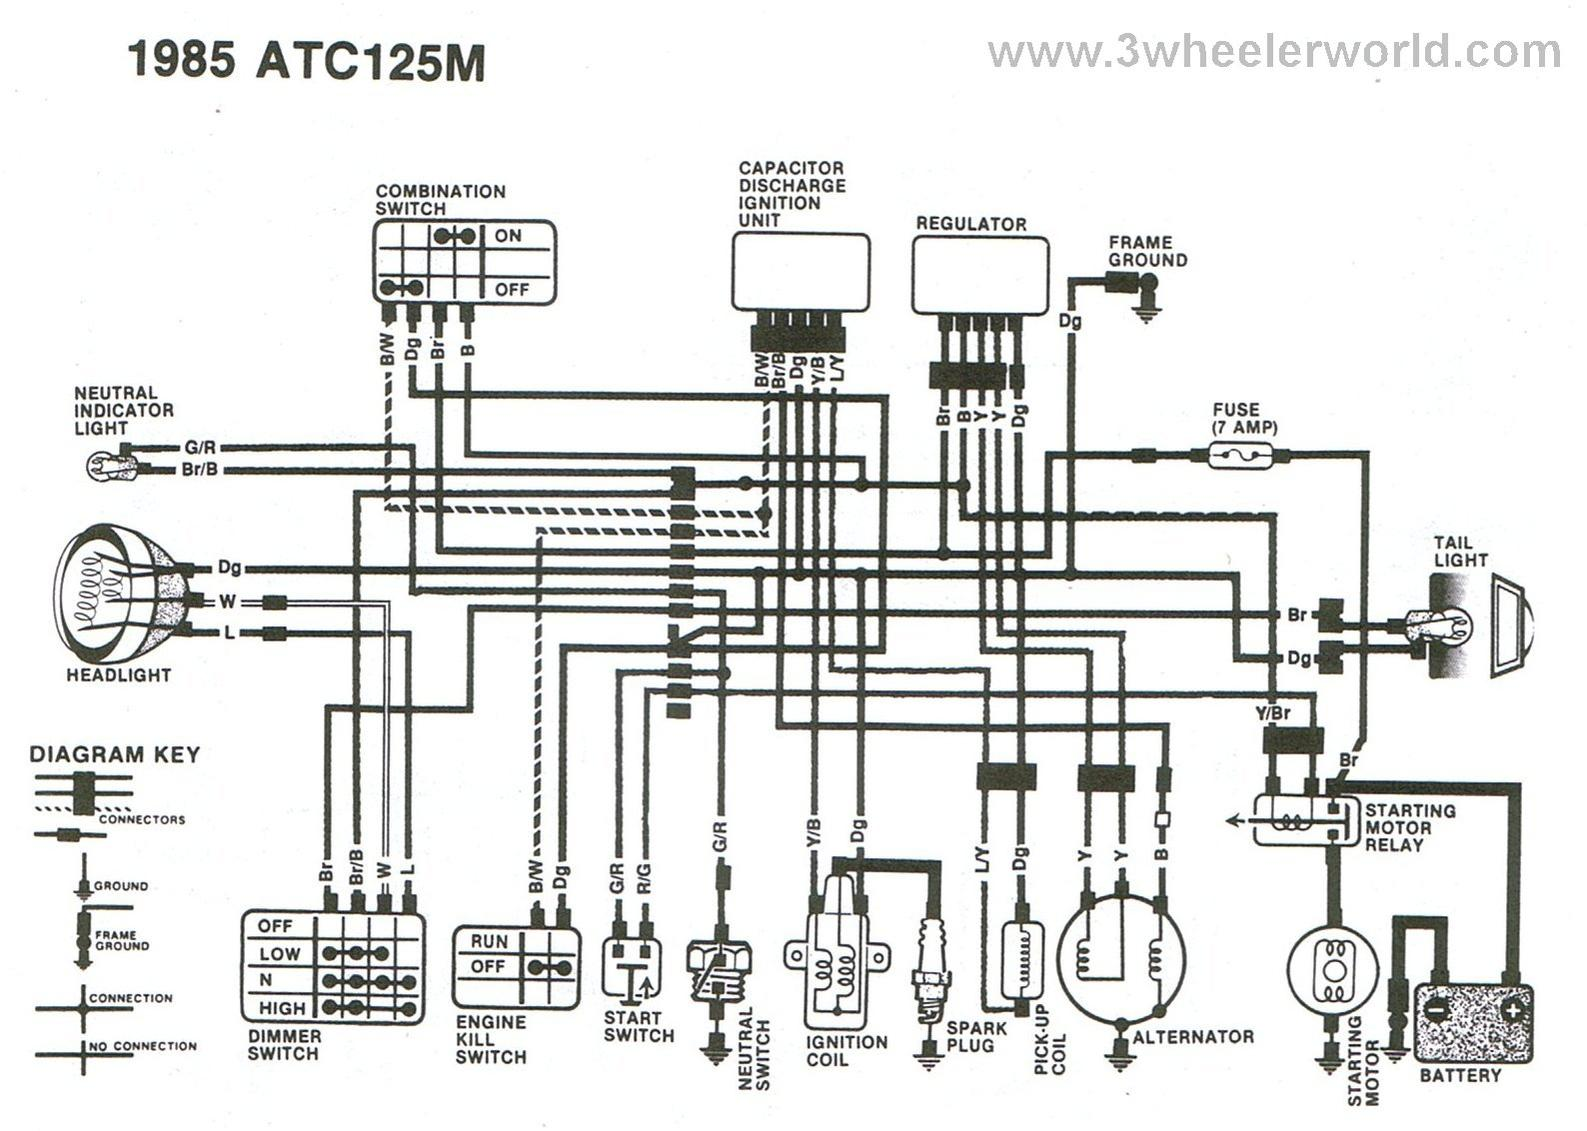 1985 Atc 125m Wiring Diagram Library Honda Goldwing Atc125m 3wheeler World